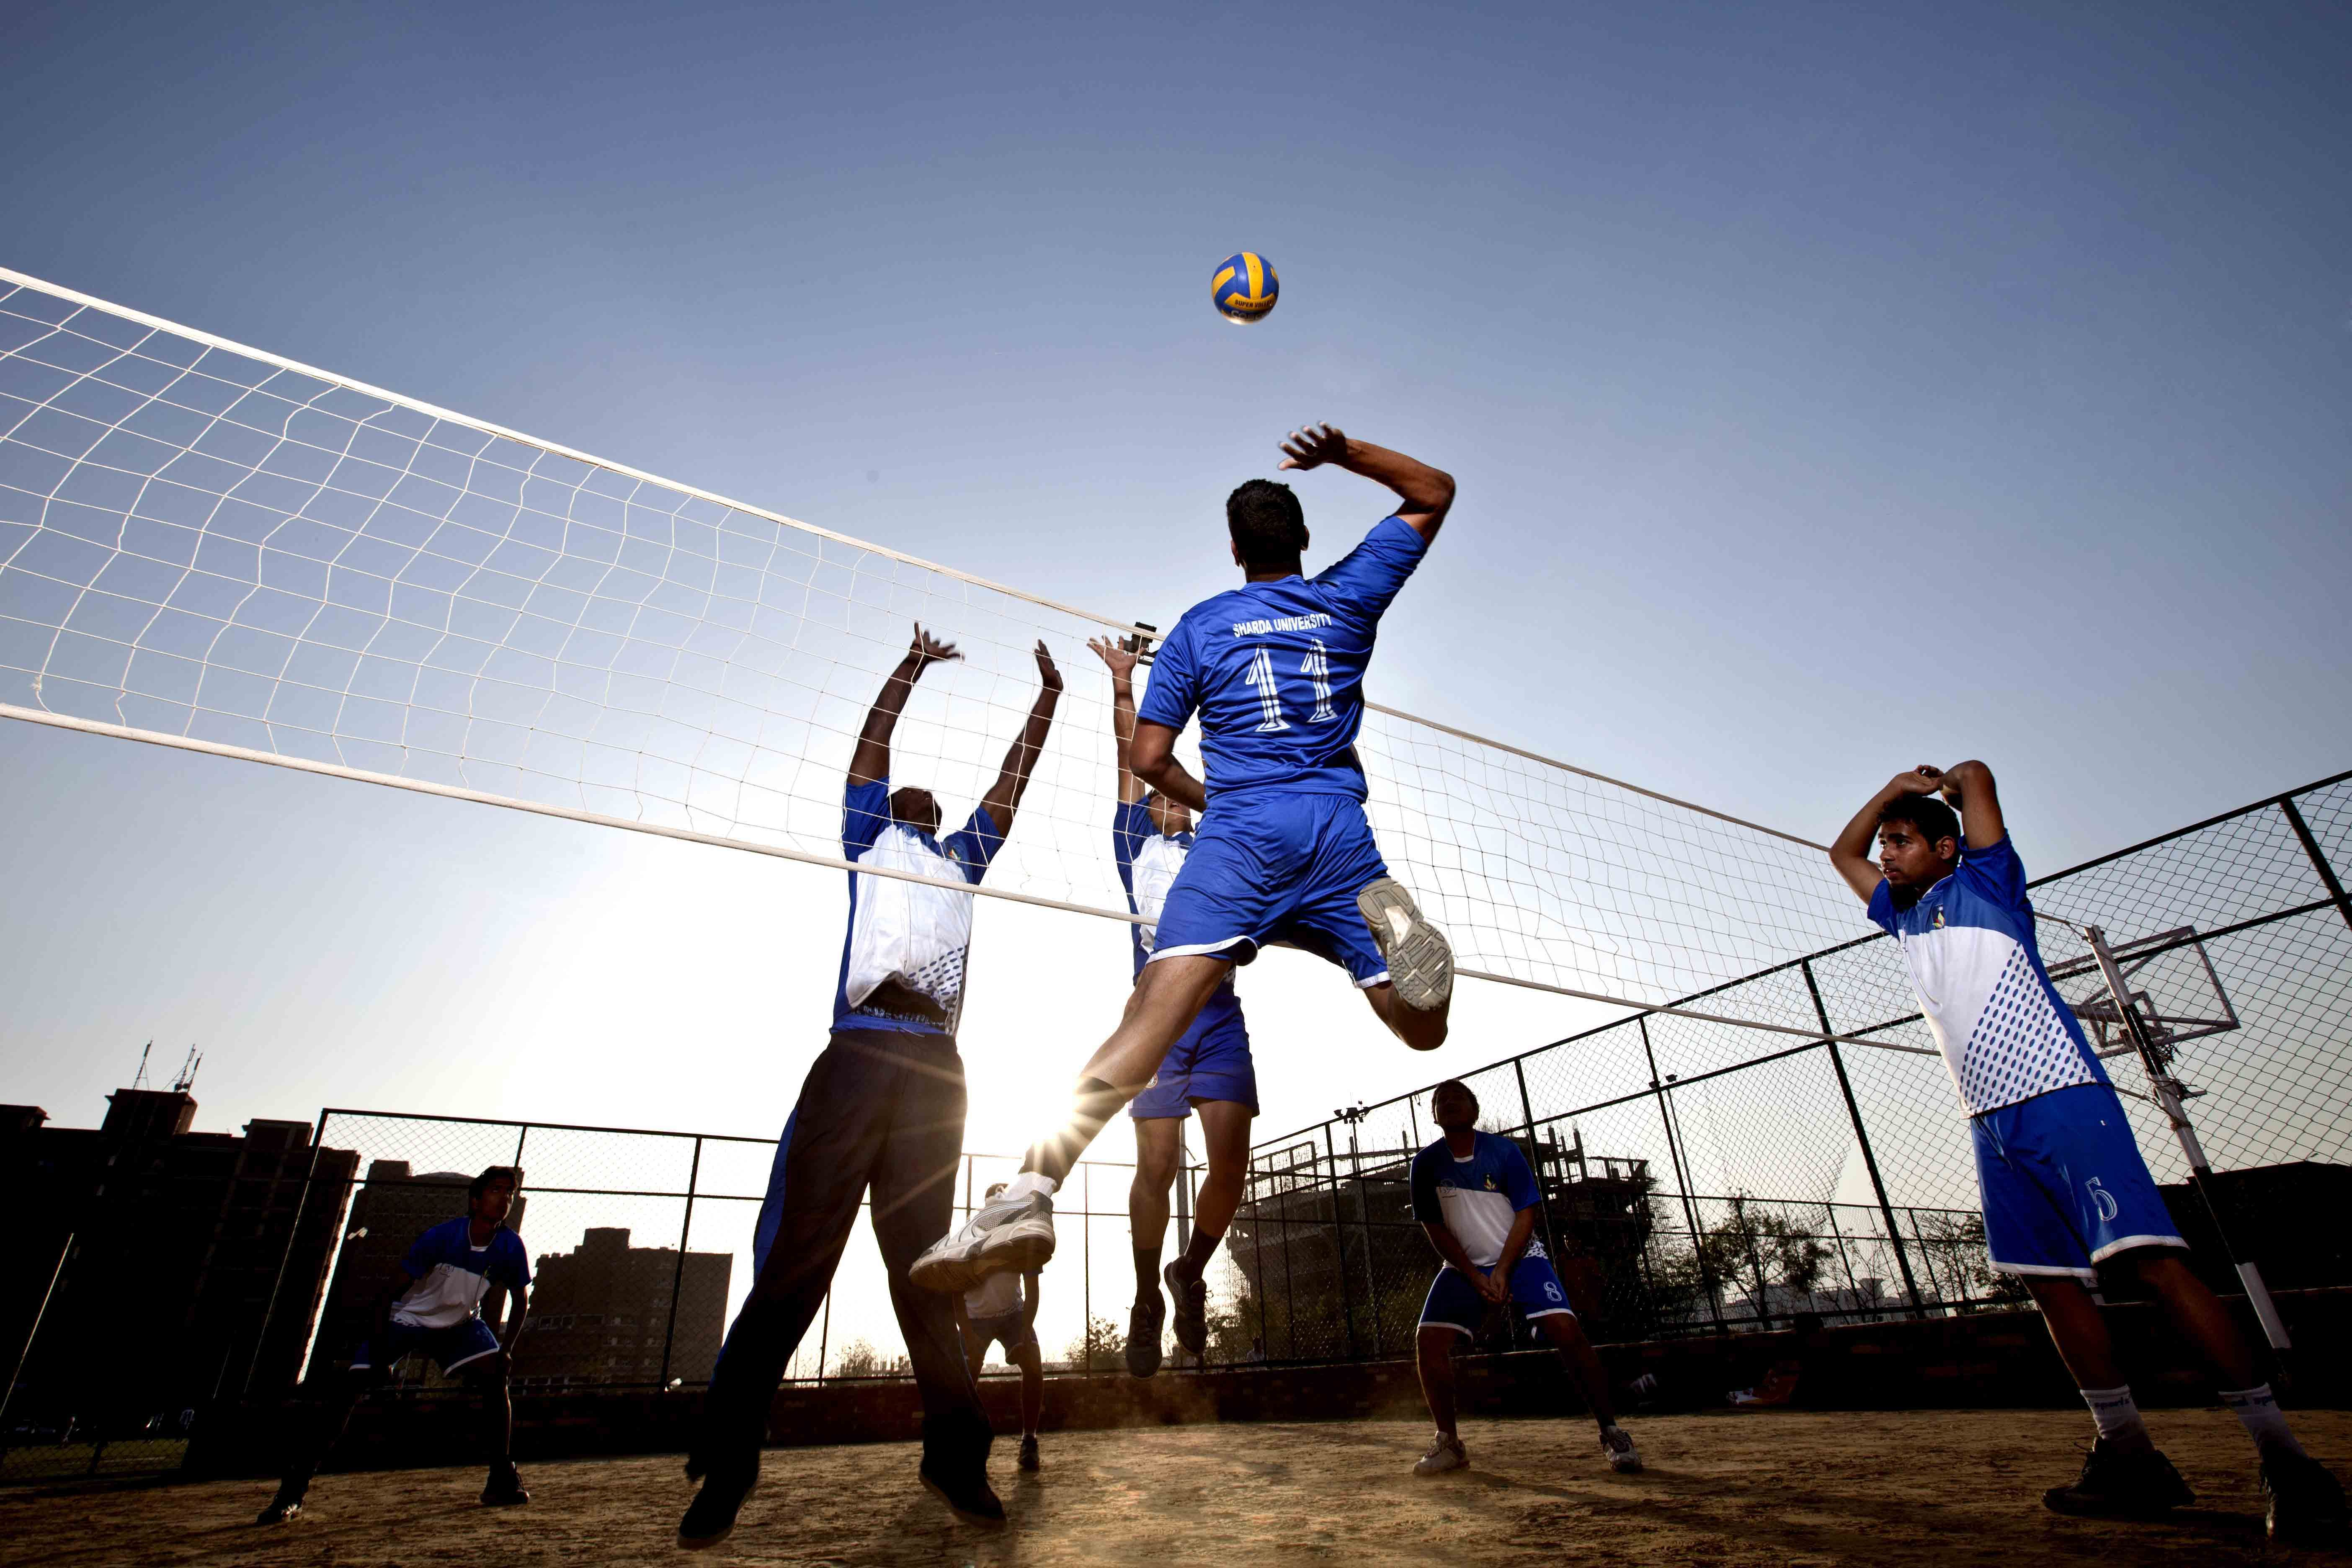 Shardans In Action While Playing Volley Ball Sports Sports Activities Volley